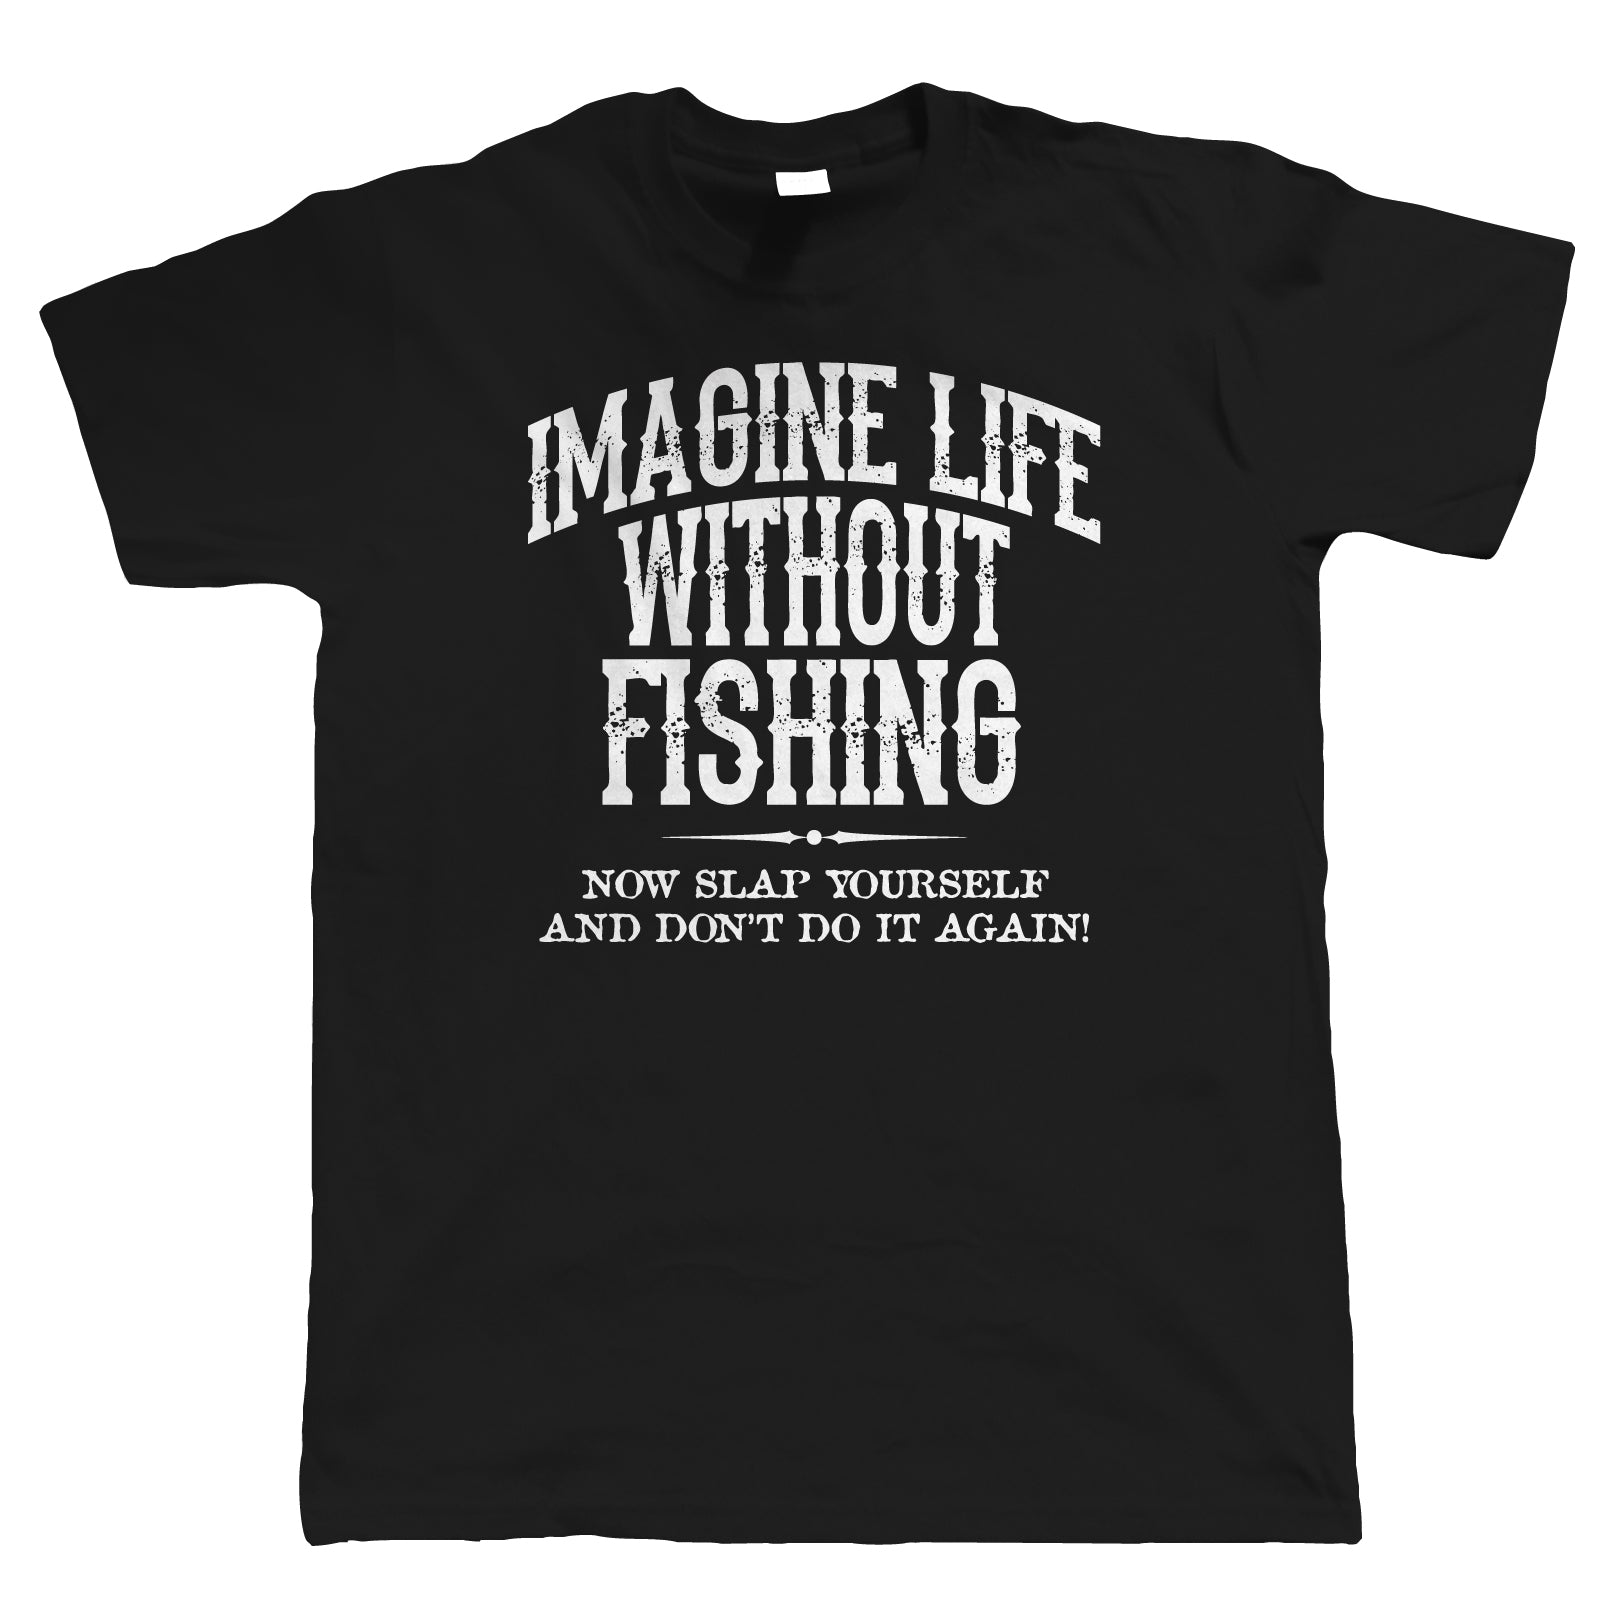 Imagine Life Without Fishing, Men's Funny T Shirt | Coarse Carp Sea Match Fly Specimen Tackle Fishermen Clothing Angling Angler | Cool Birthday Christmas Gift Him Dad Husband